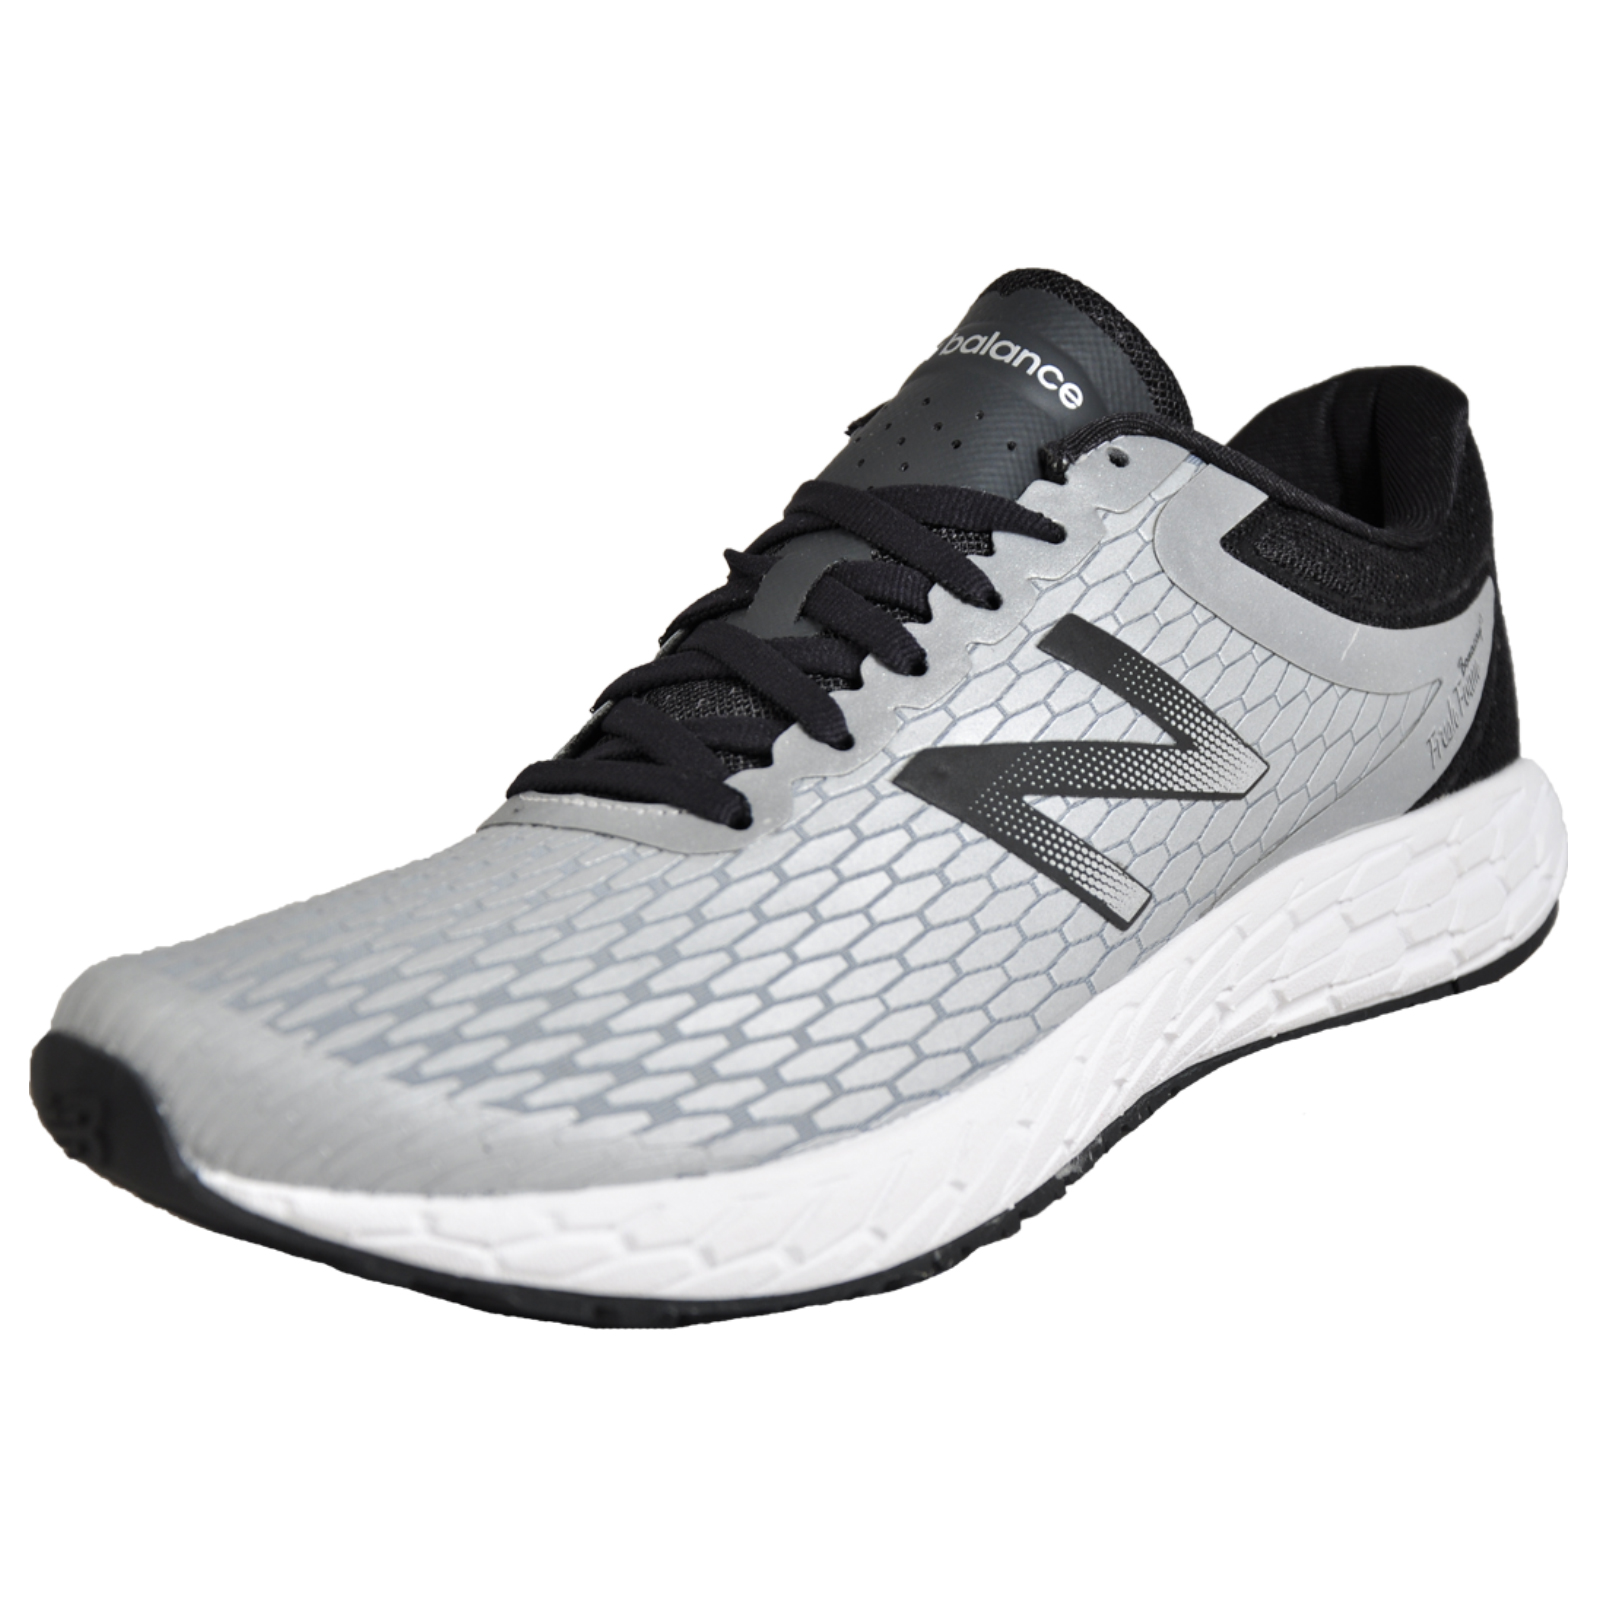 official photos c1c04 70625 New Balance Fresh Foam Boracay v3 Men s Elite Running Shoes Gym Fitness  Trainers